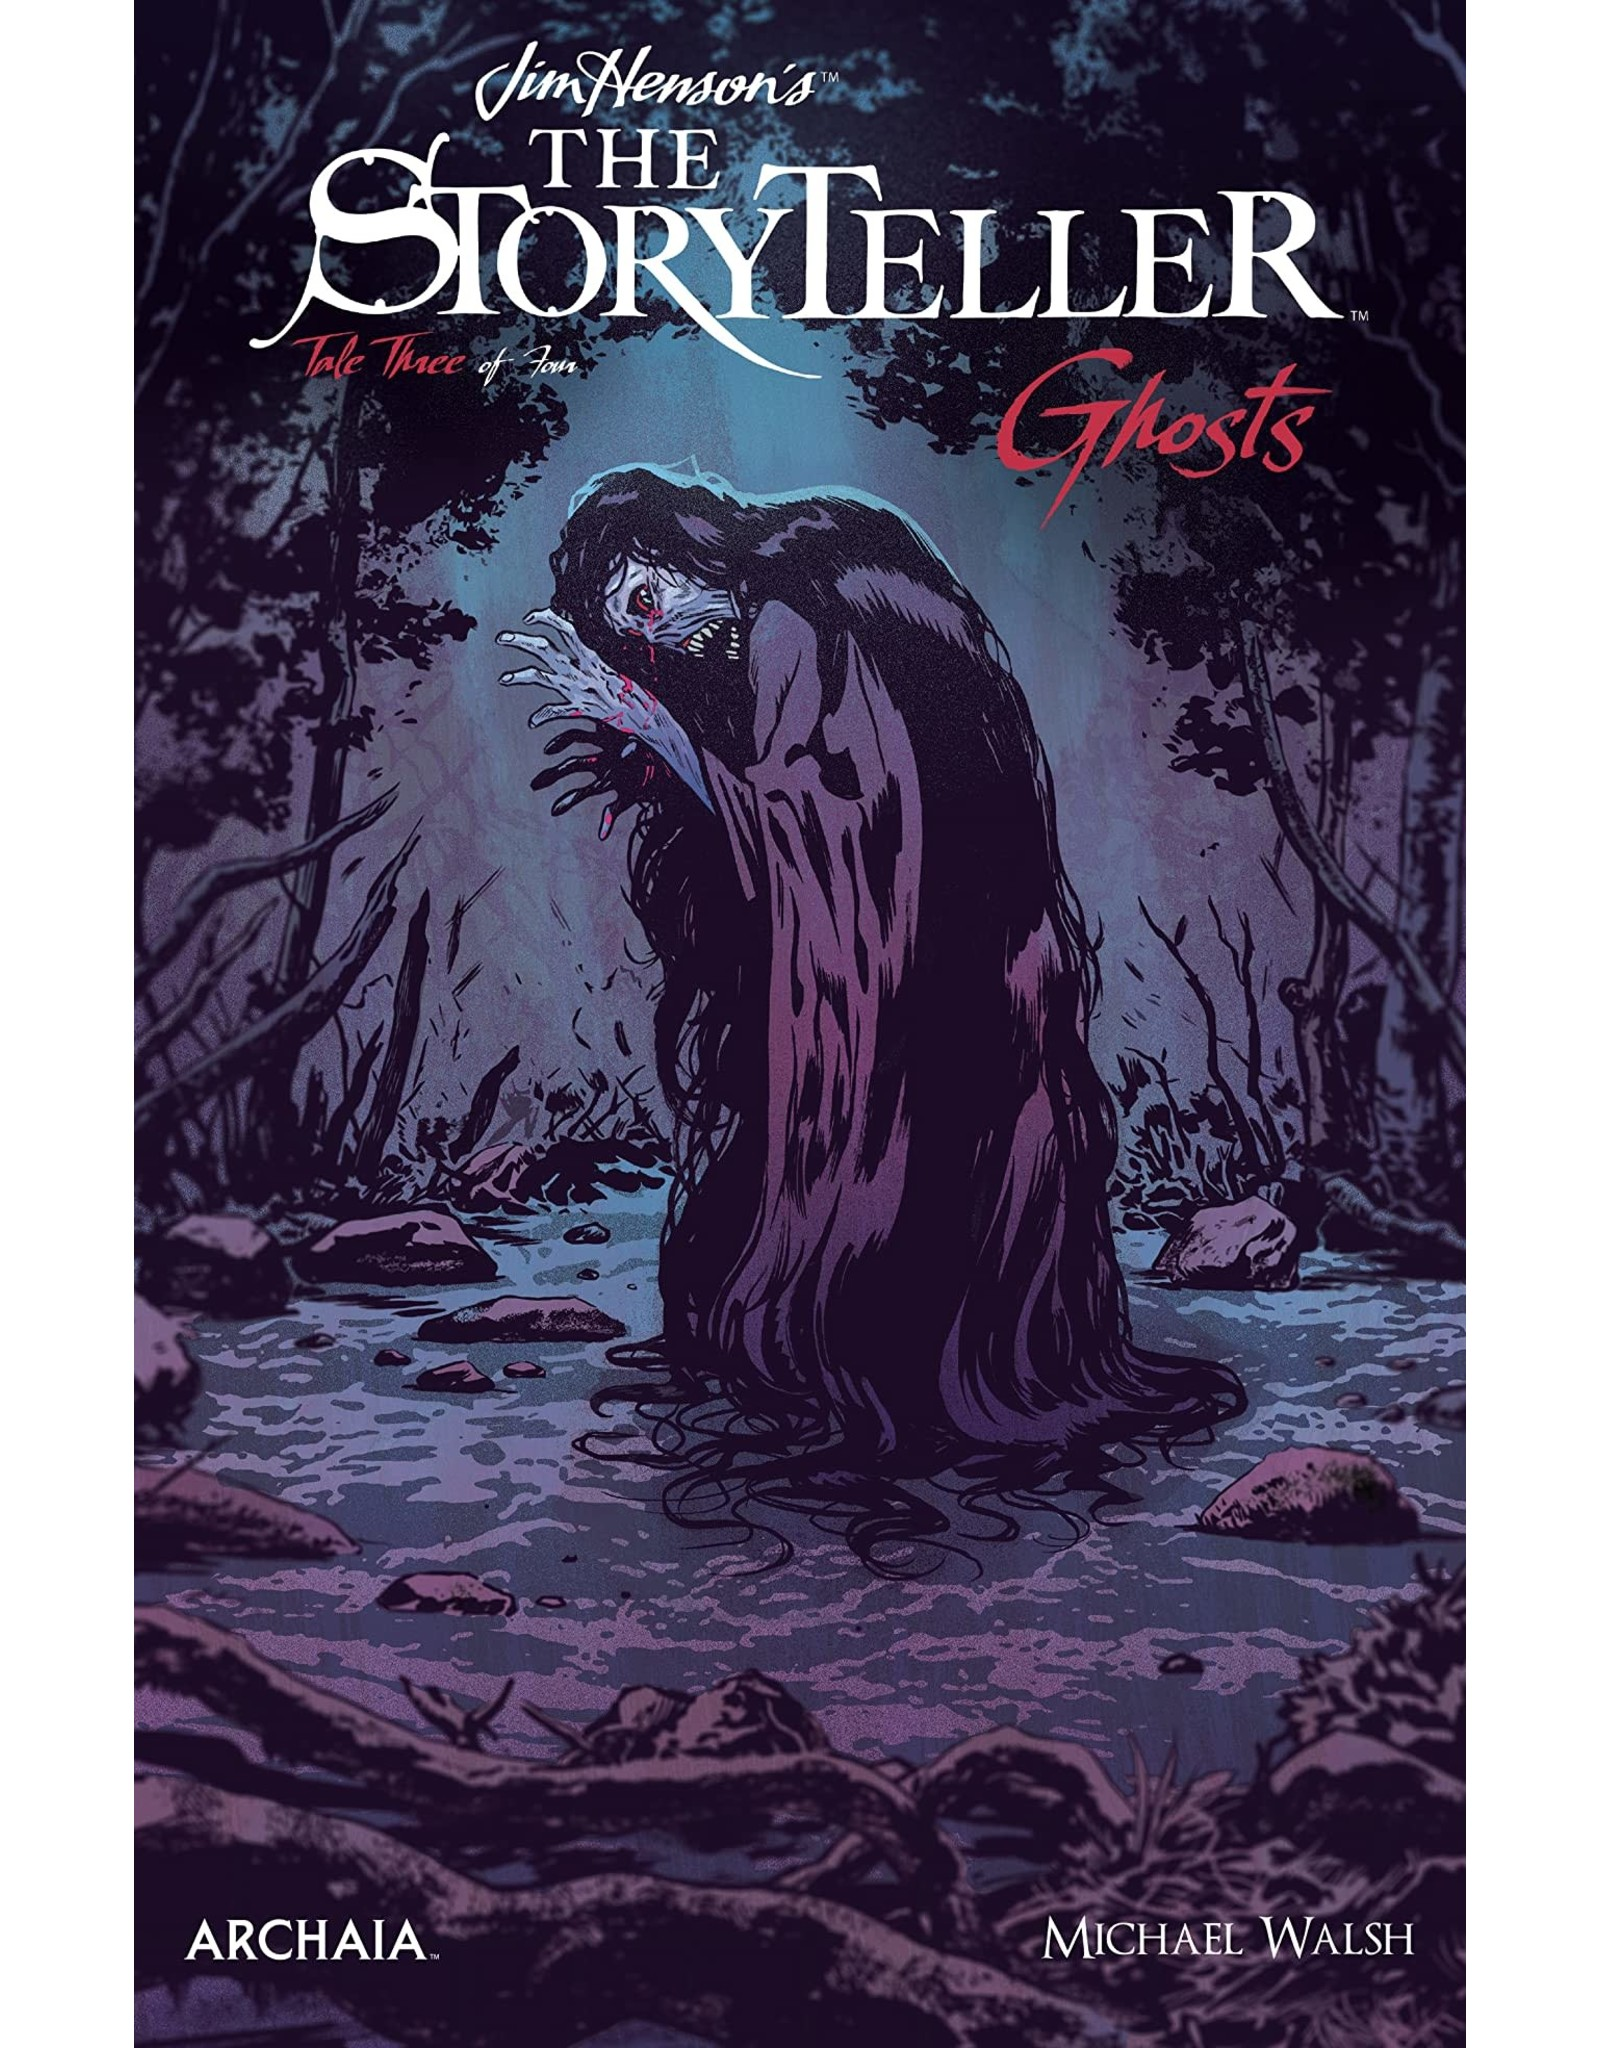 BOOM! STUDIOS JIM HENSON STORYTELLER GHOSTS #3 (OF 4) CVR A WALSH